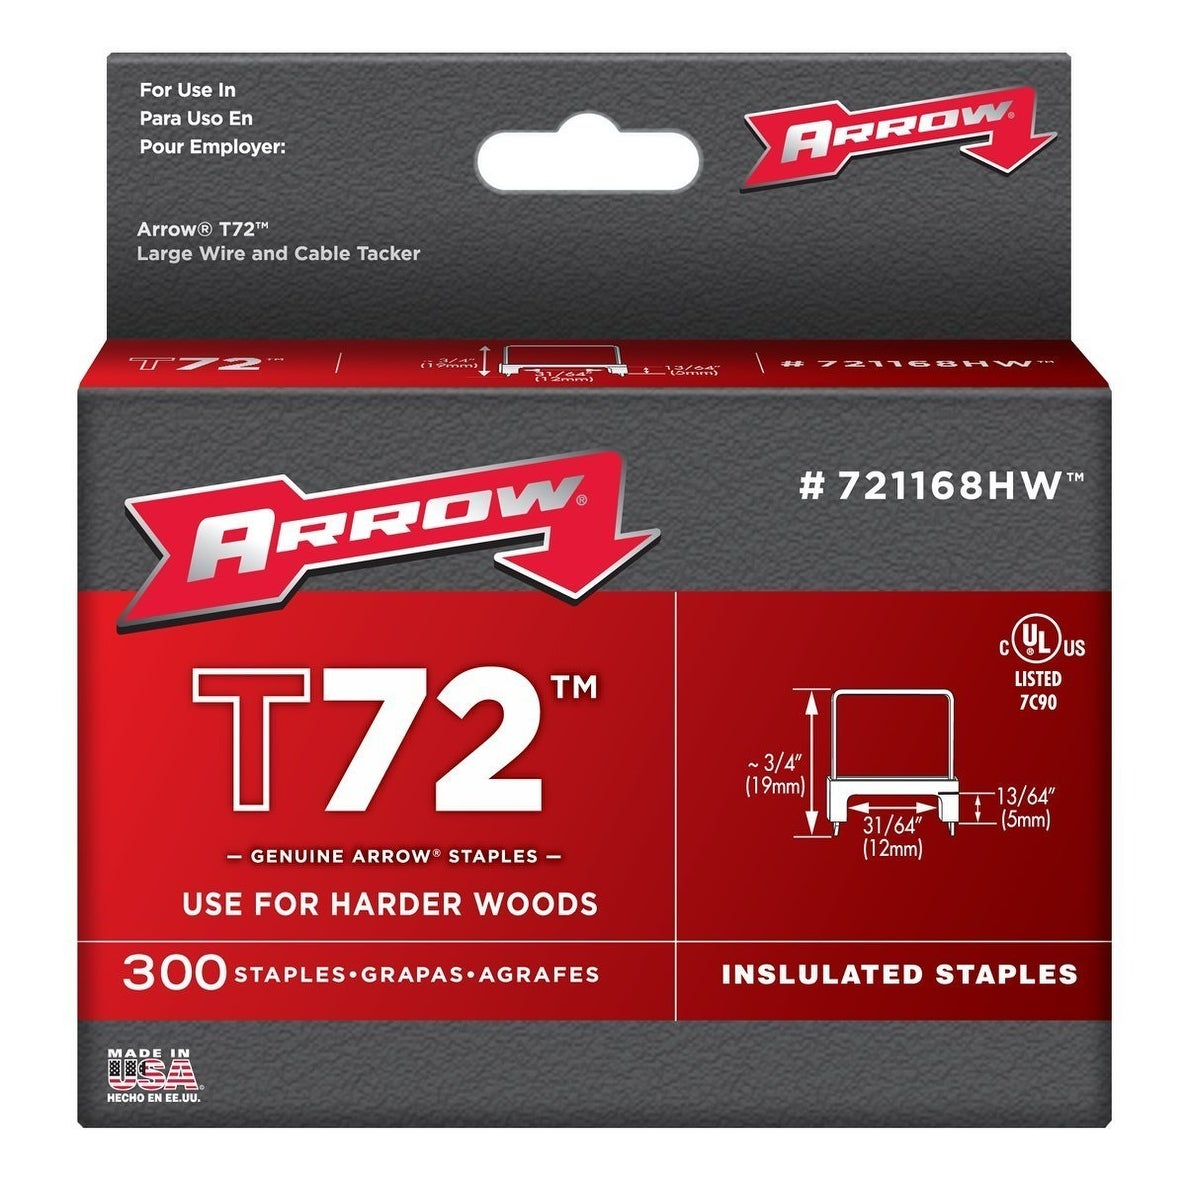 Arrow Fastener 721168HW Insulated Staples, 13/64 X 31/64